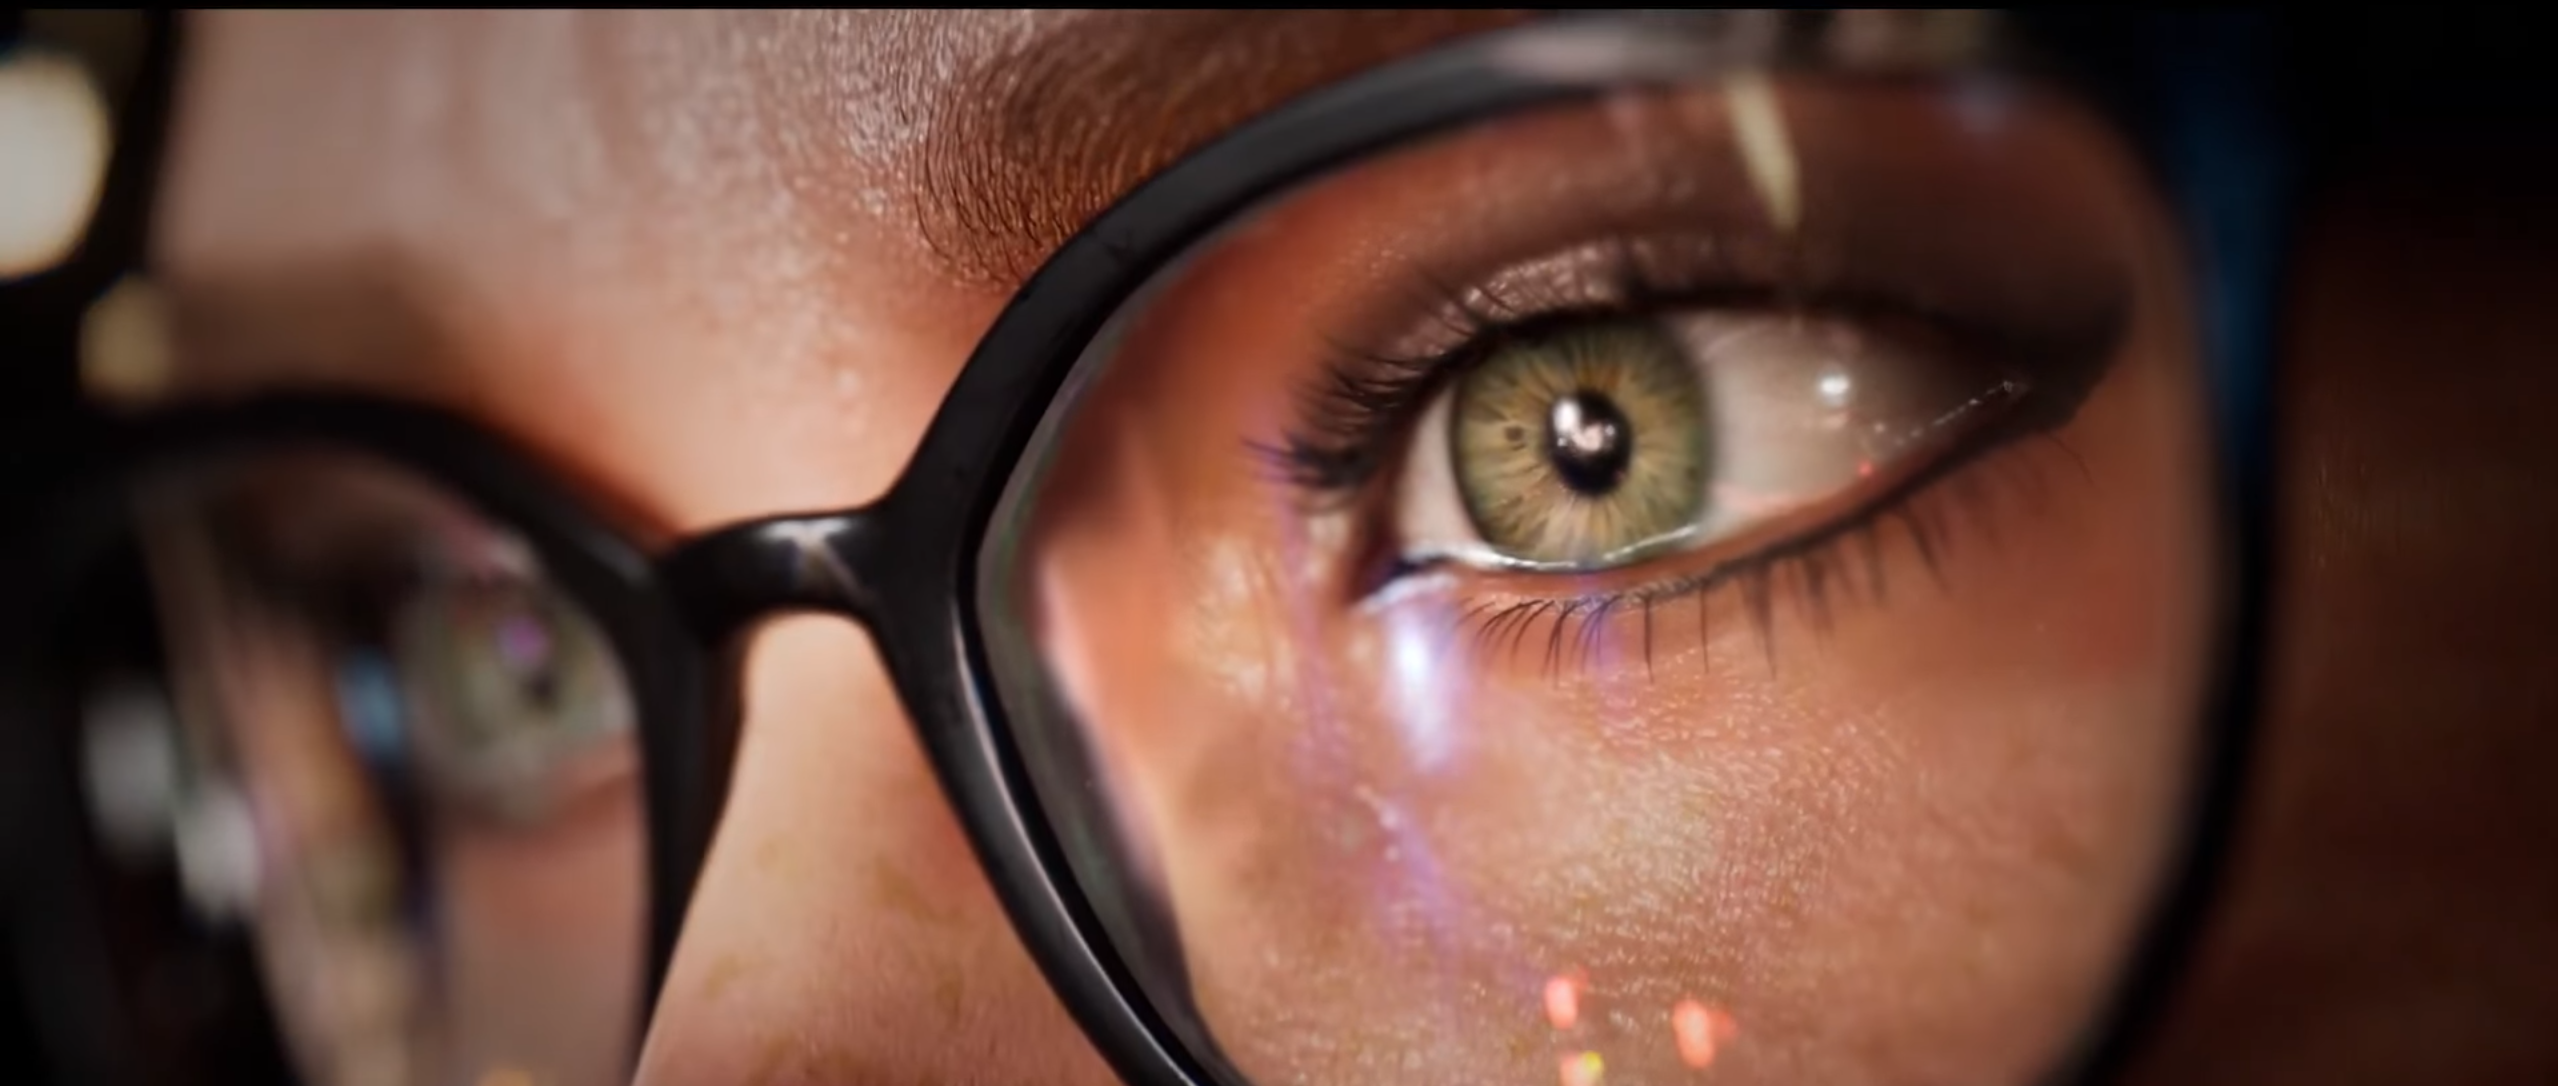 A scene from the Gotham Knights trailer - Barbara Gordon's glasses.